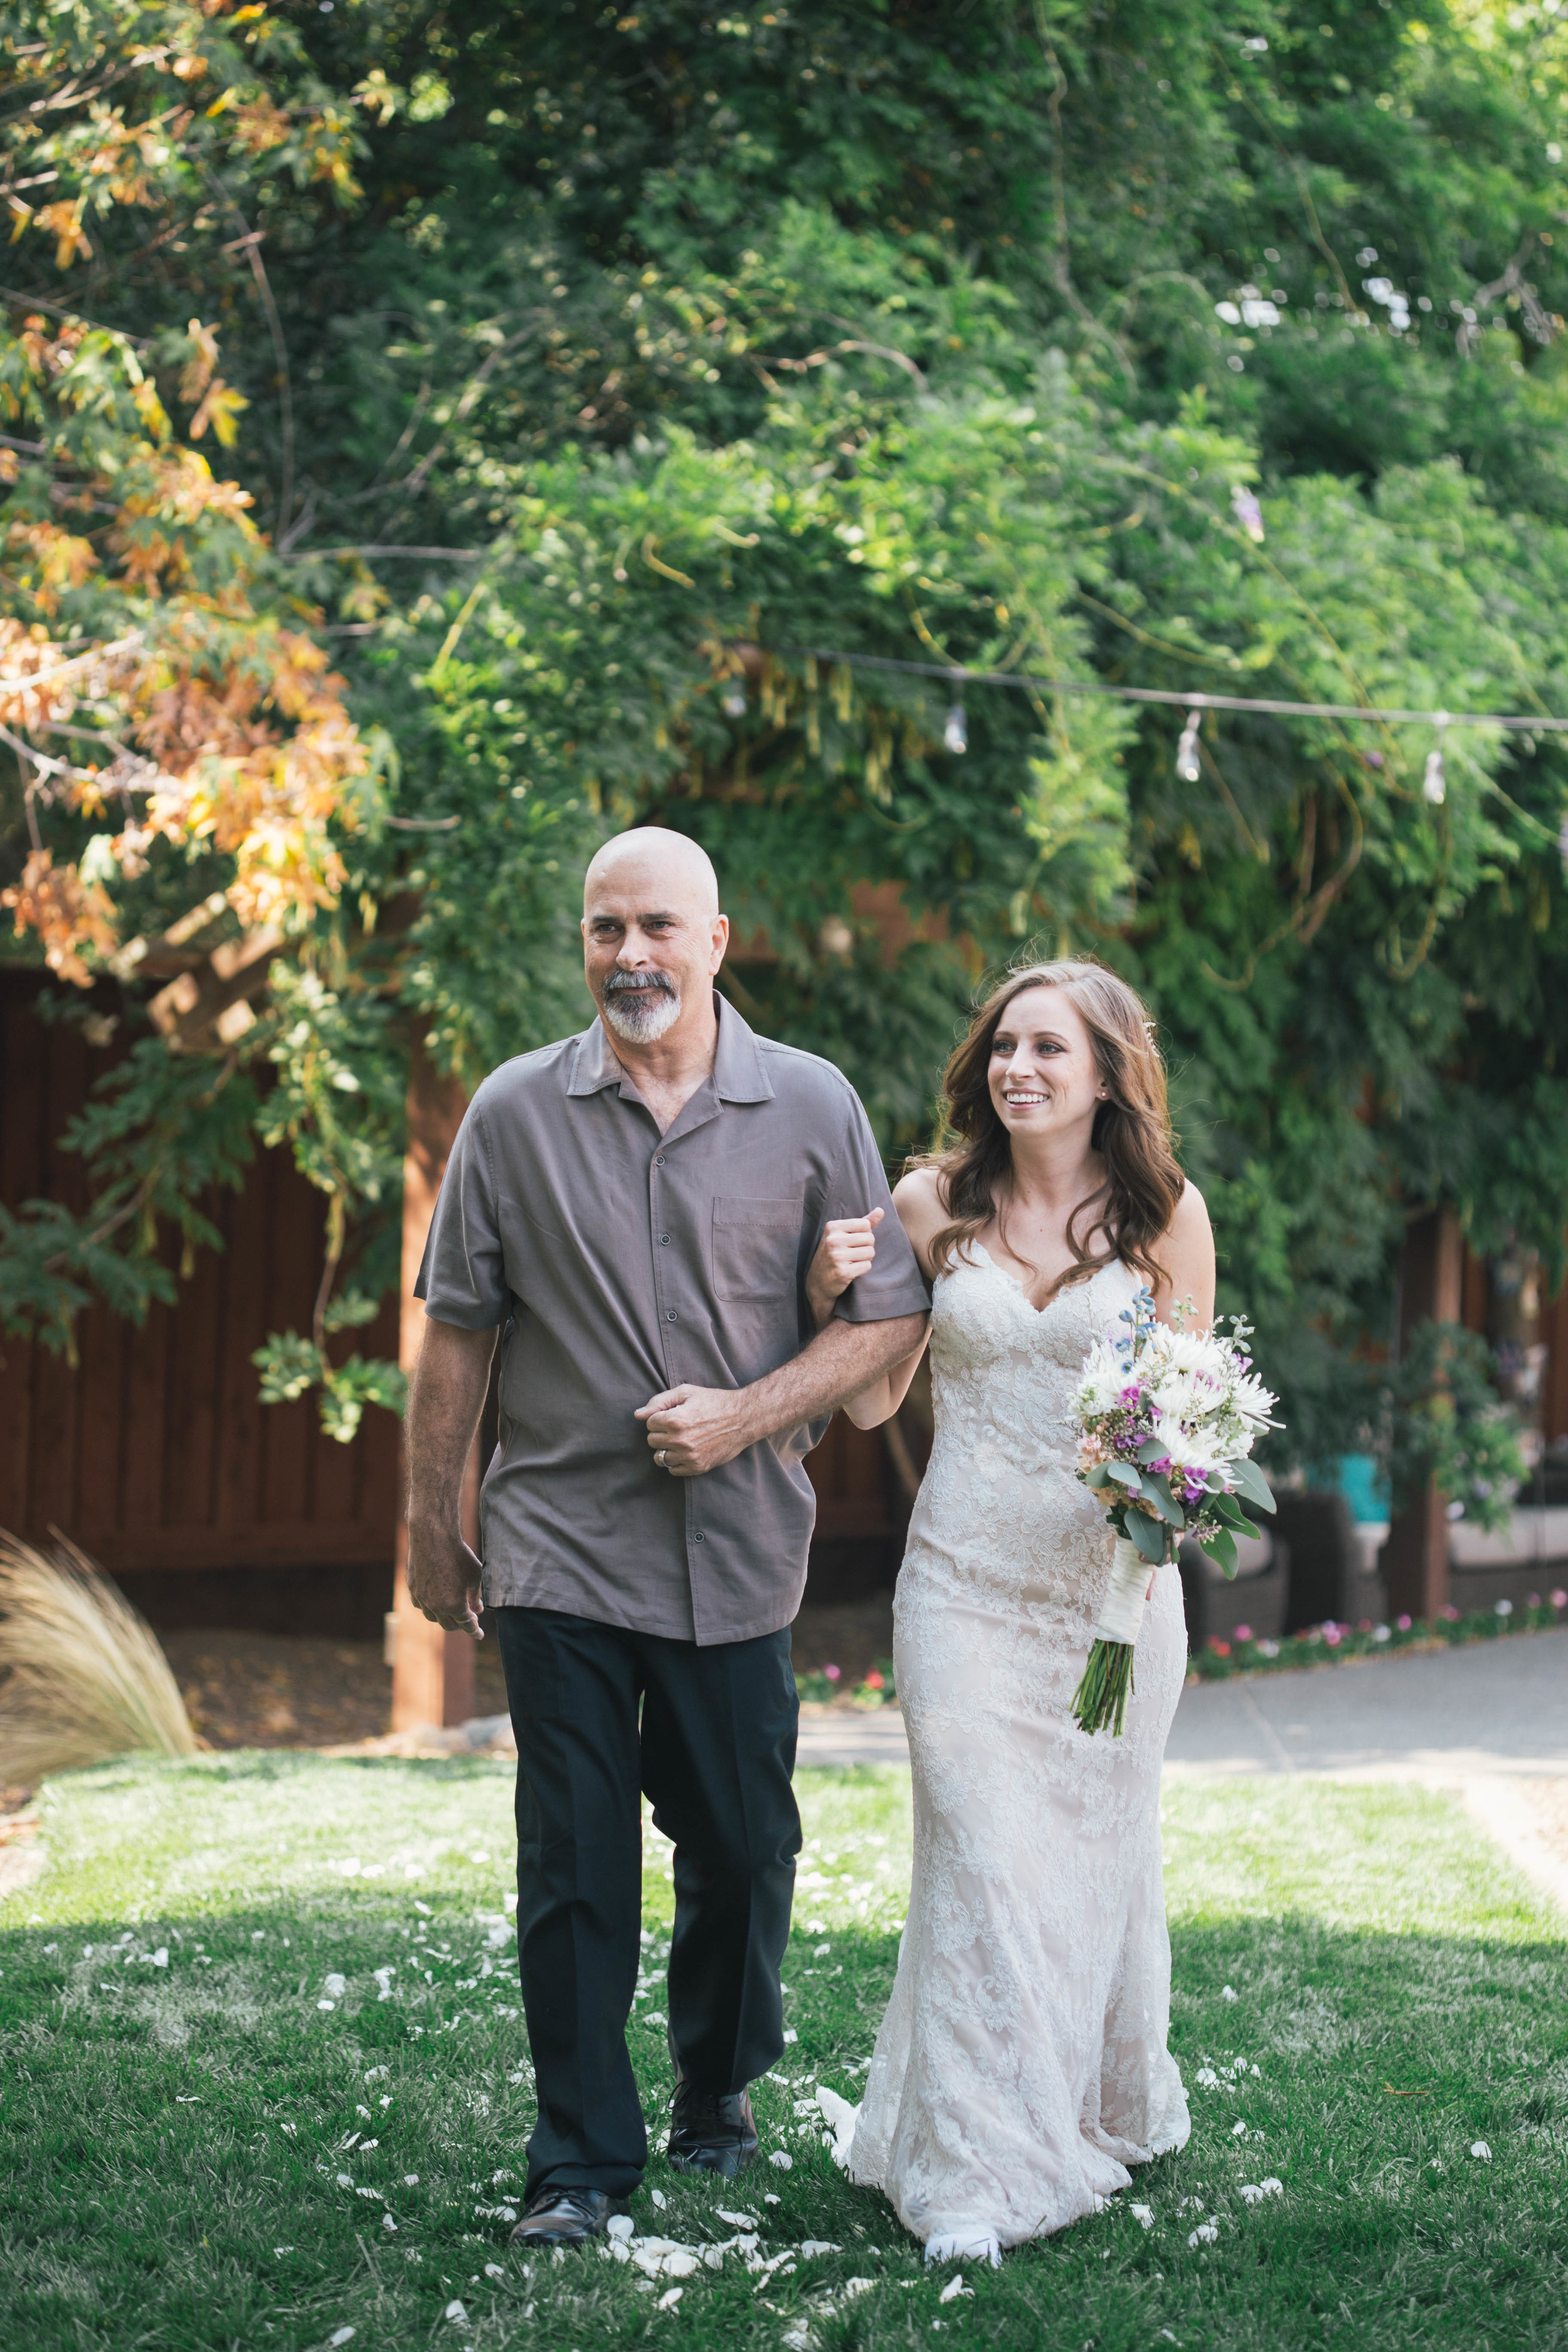 sonoma-county-wedding-photographer-backyard-ceremony-bride-father